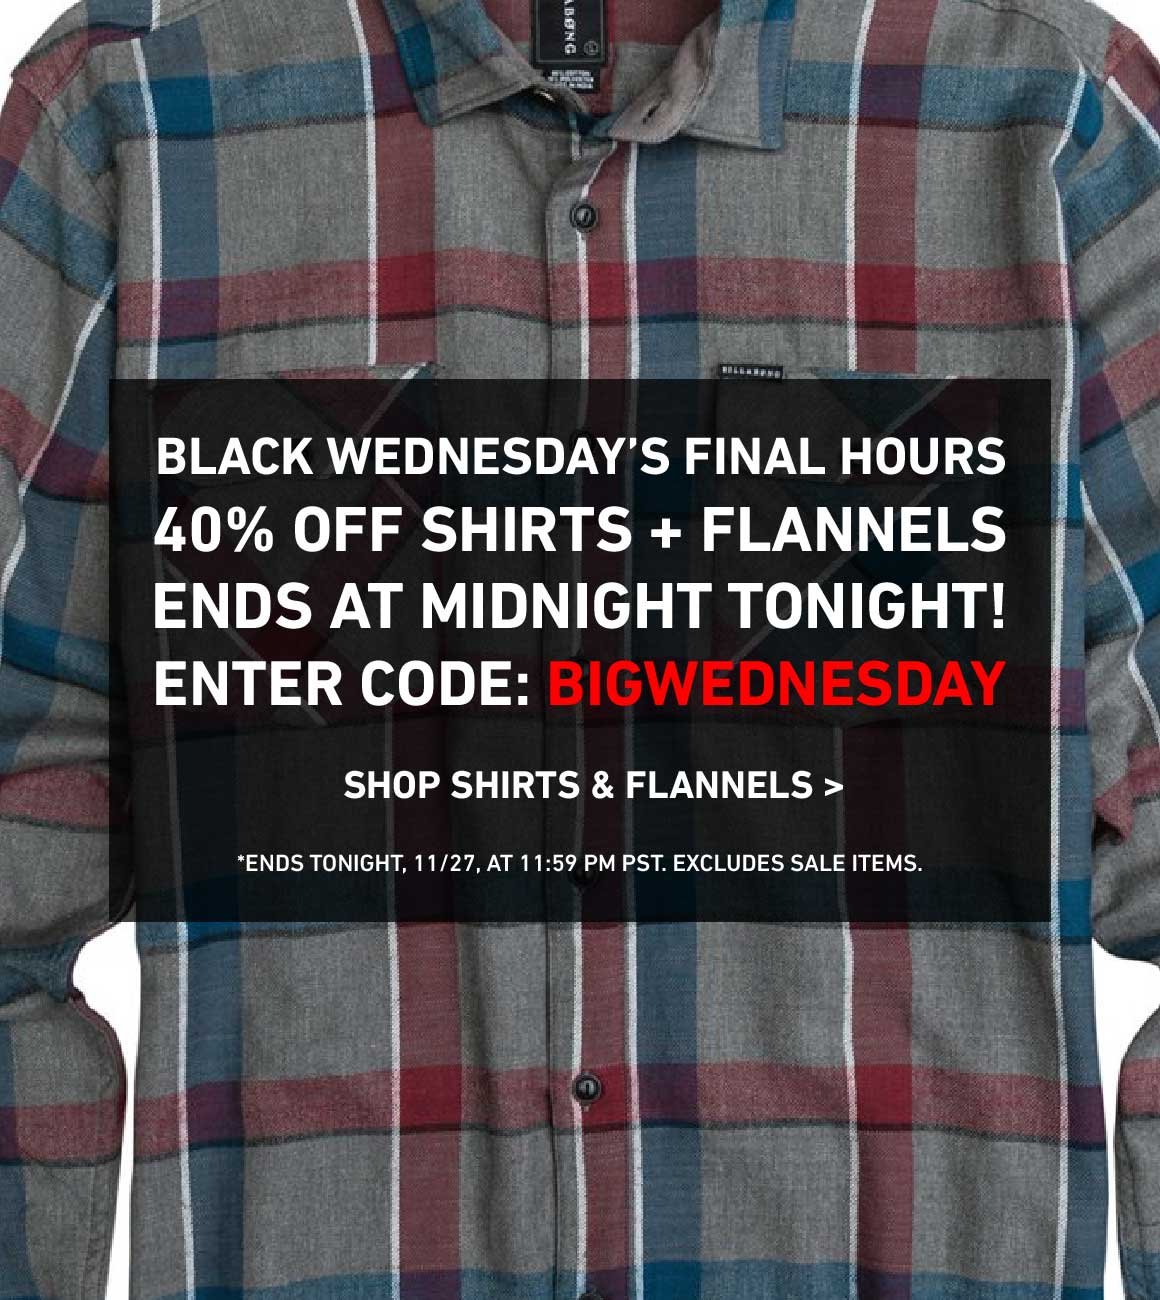 Last Chance: 40% Off New Shirts and Flannels Ends Tonight! Enter Code: BIGWEDNESDAY